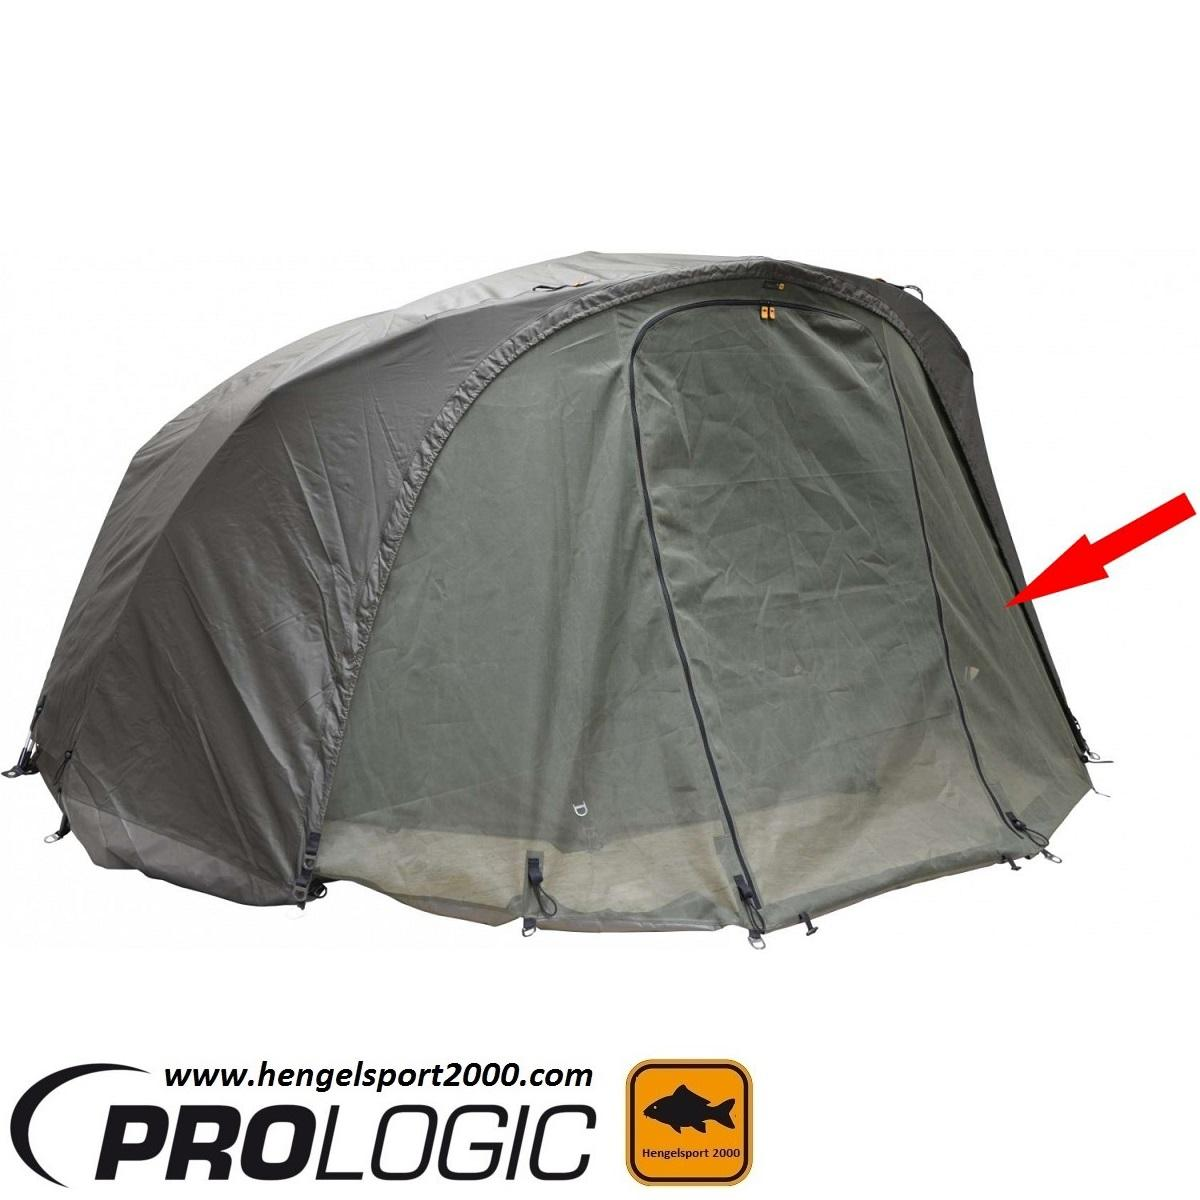 Prologic T-Lite Bivvy 1man Mozzy Panel